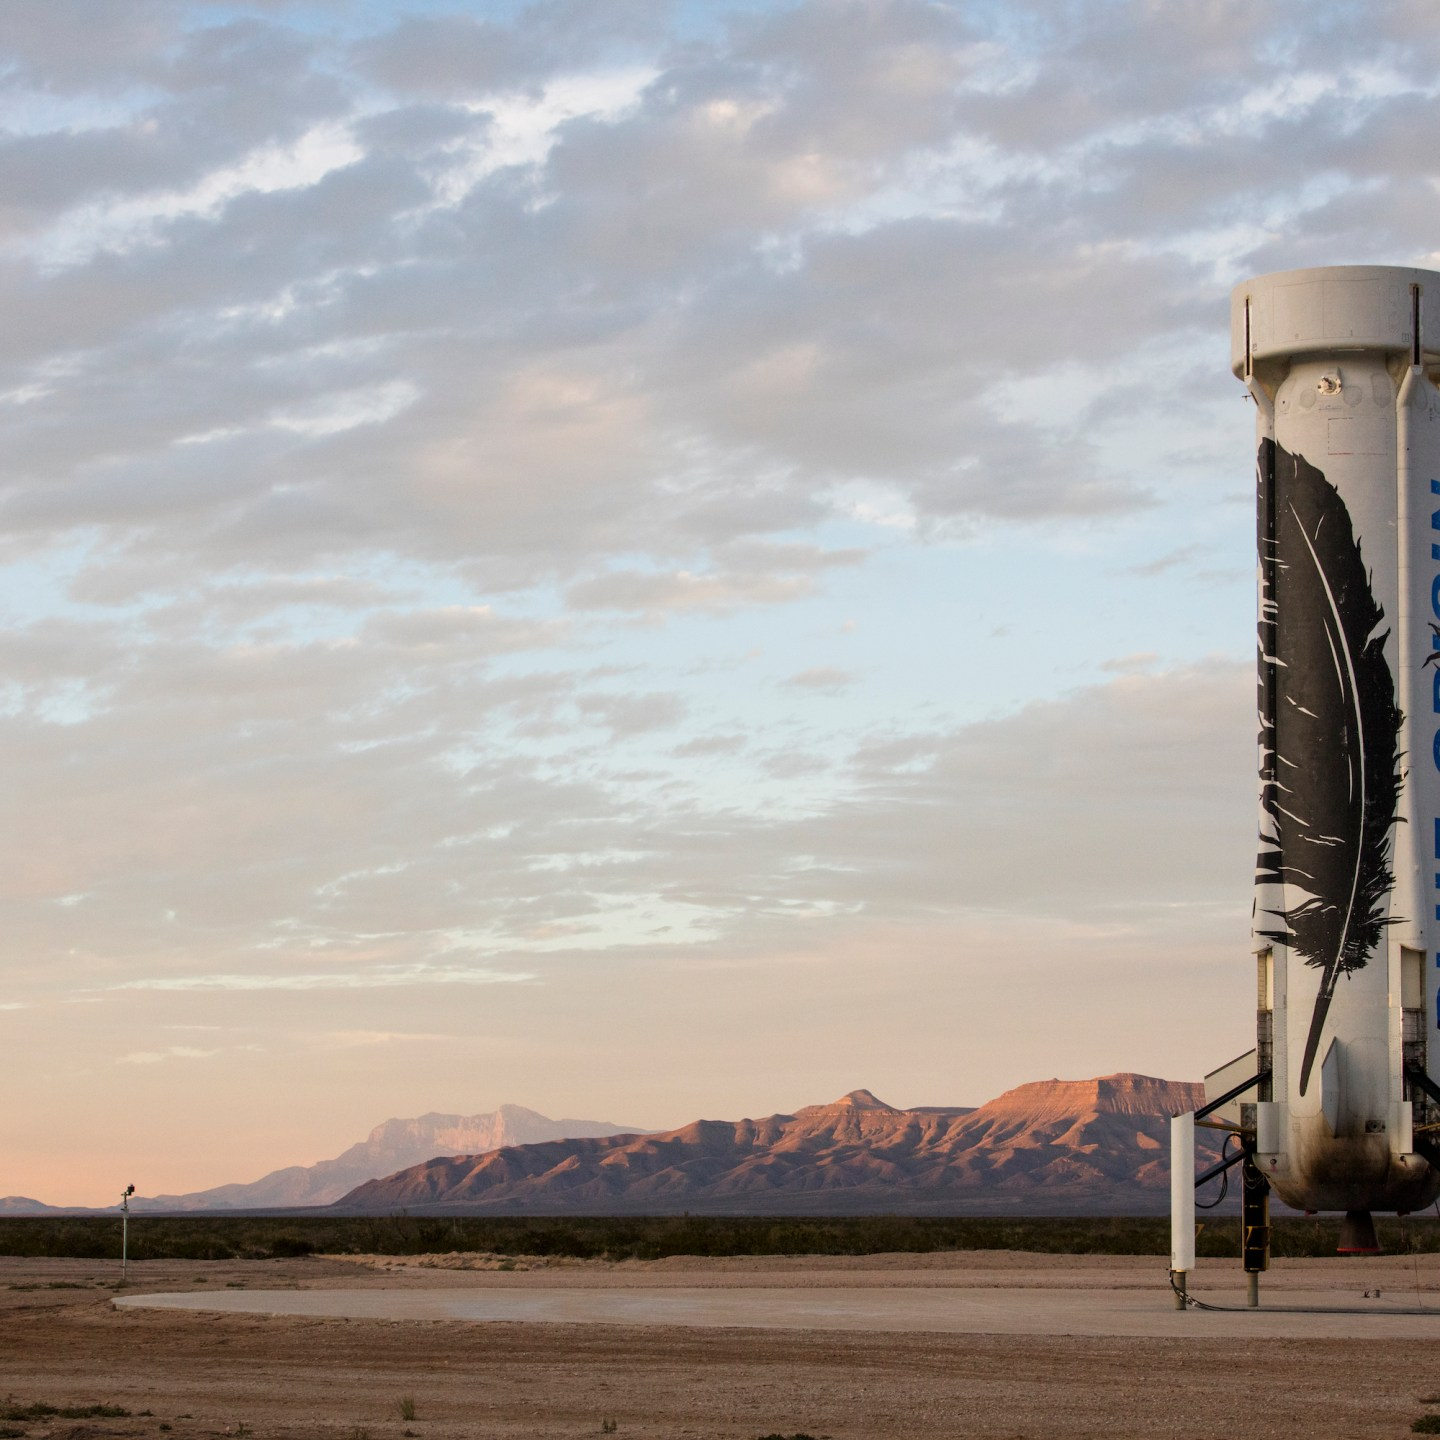 Blue Origin brings Science Fiction to Life